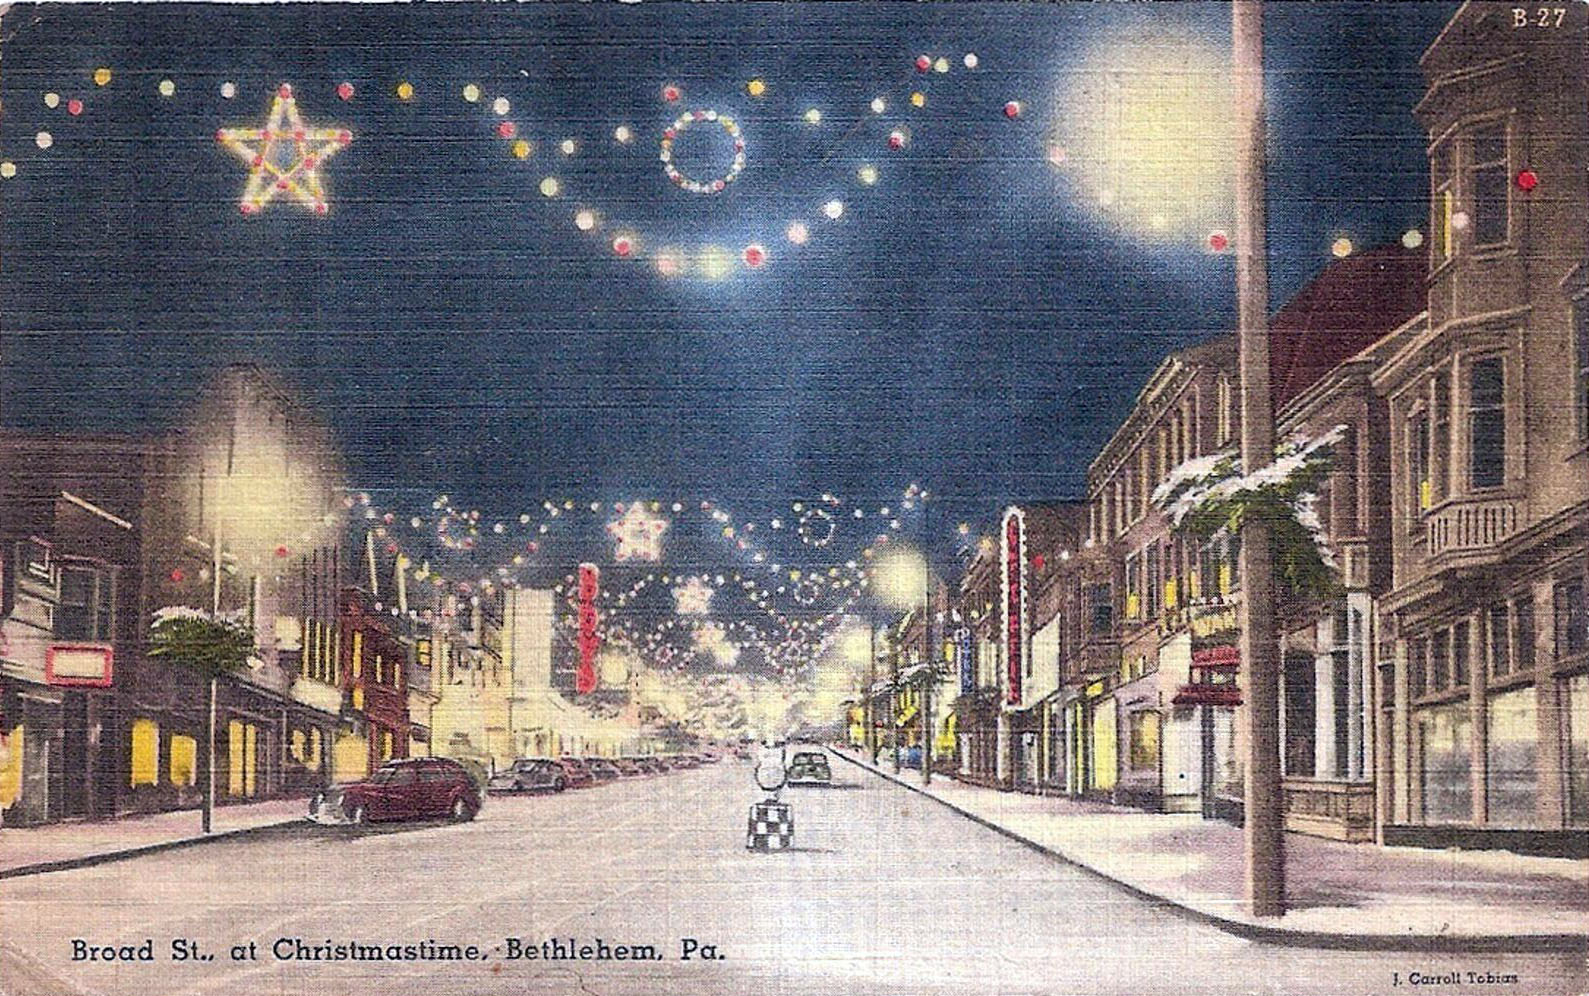 Merry Christmas from Bethlehem, PA, vintage 1940s postcard